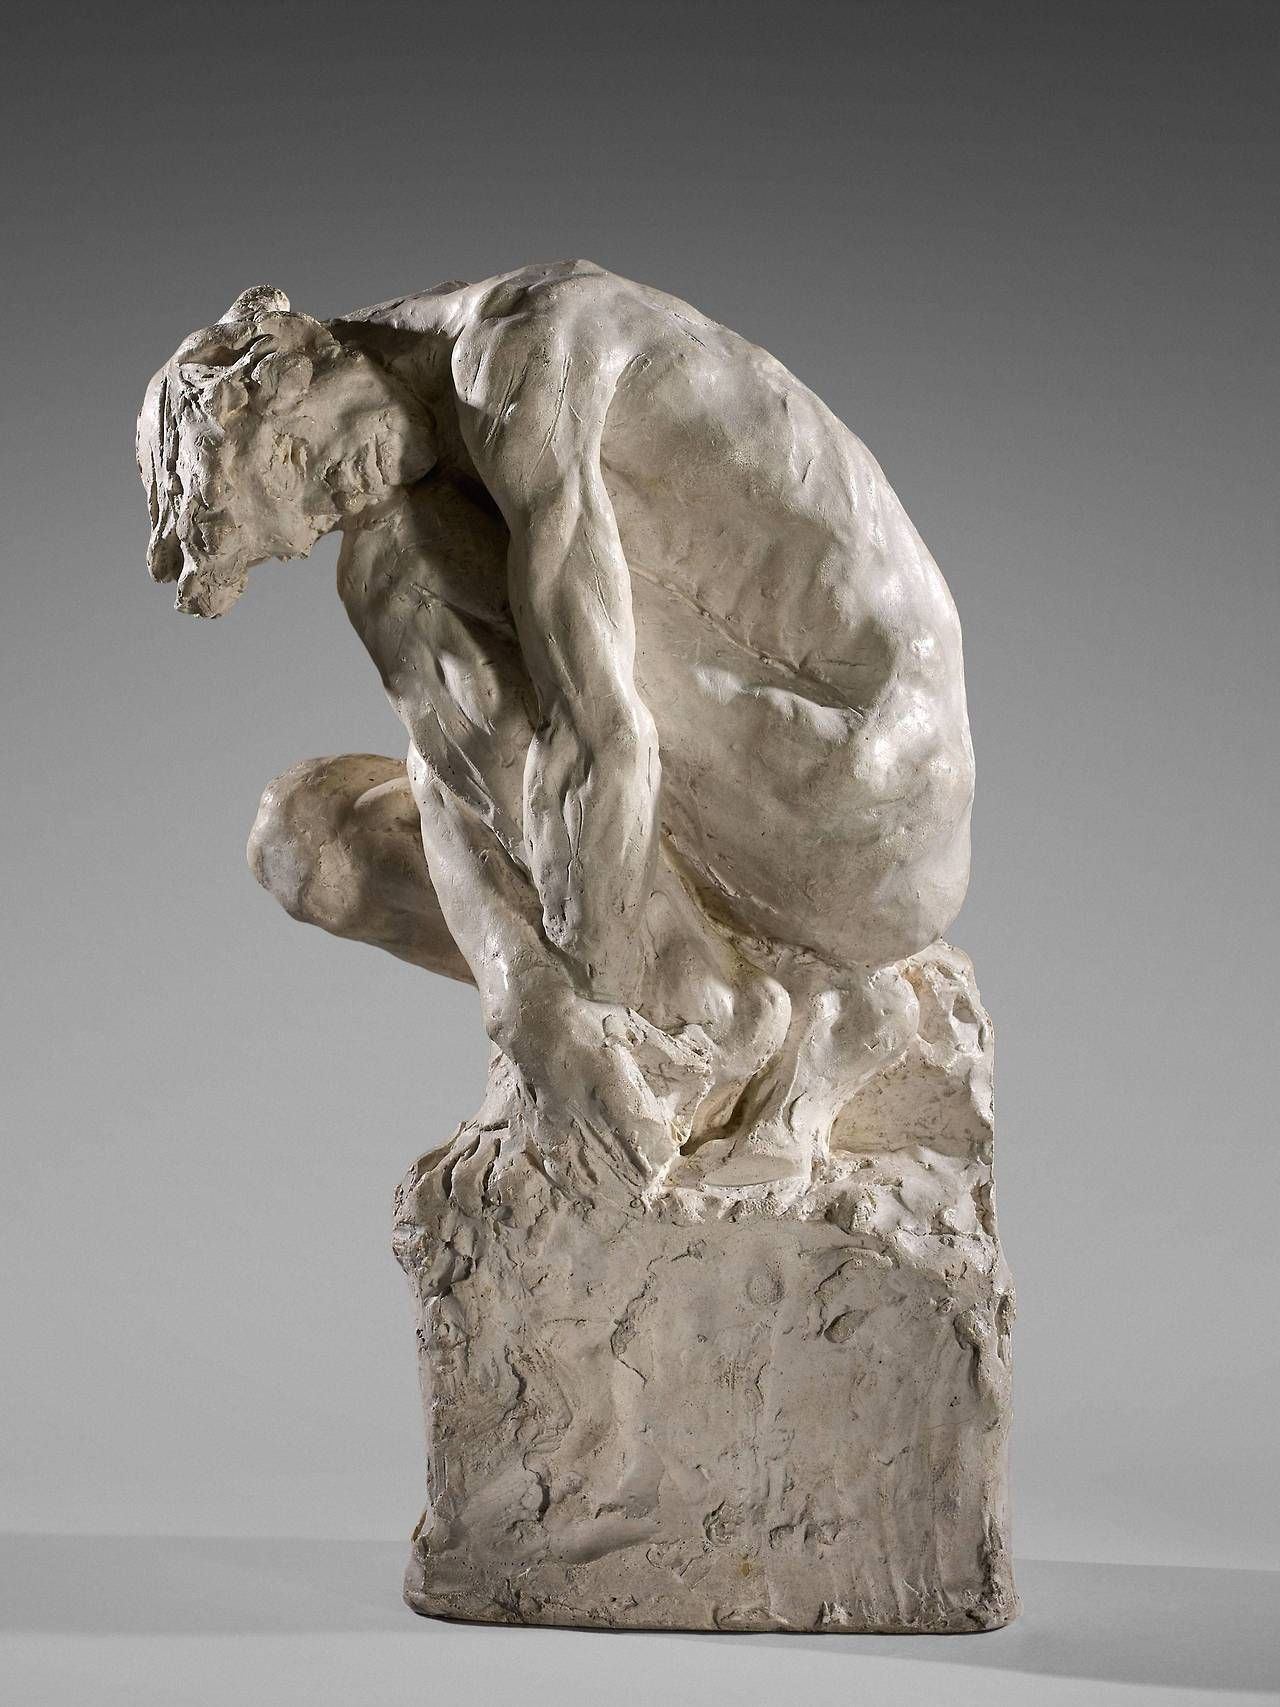 Female Artists Of Art History Europeansculpture Camille Claudel 1864 1943 Rodin Sculpture Sculpture Art Human Sculpture